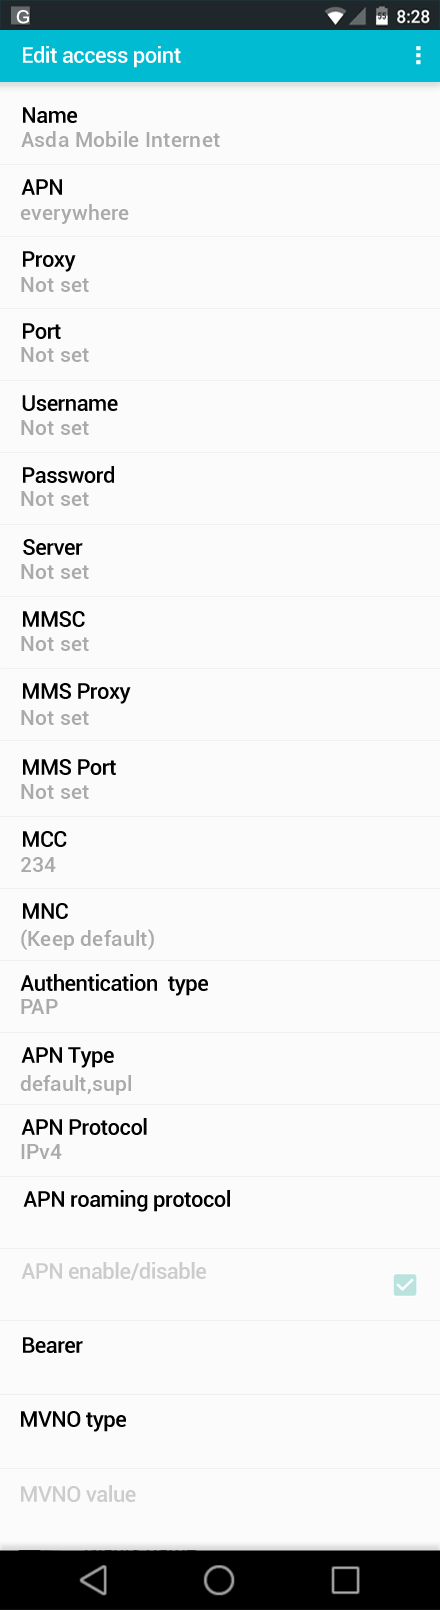 Asda Mobile Internet APN settings for Android screenshot